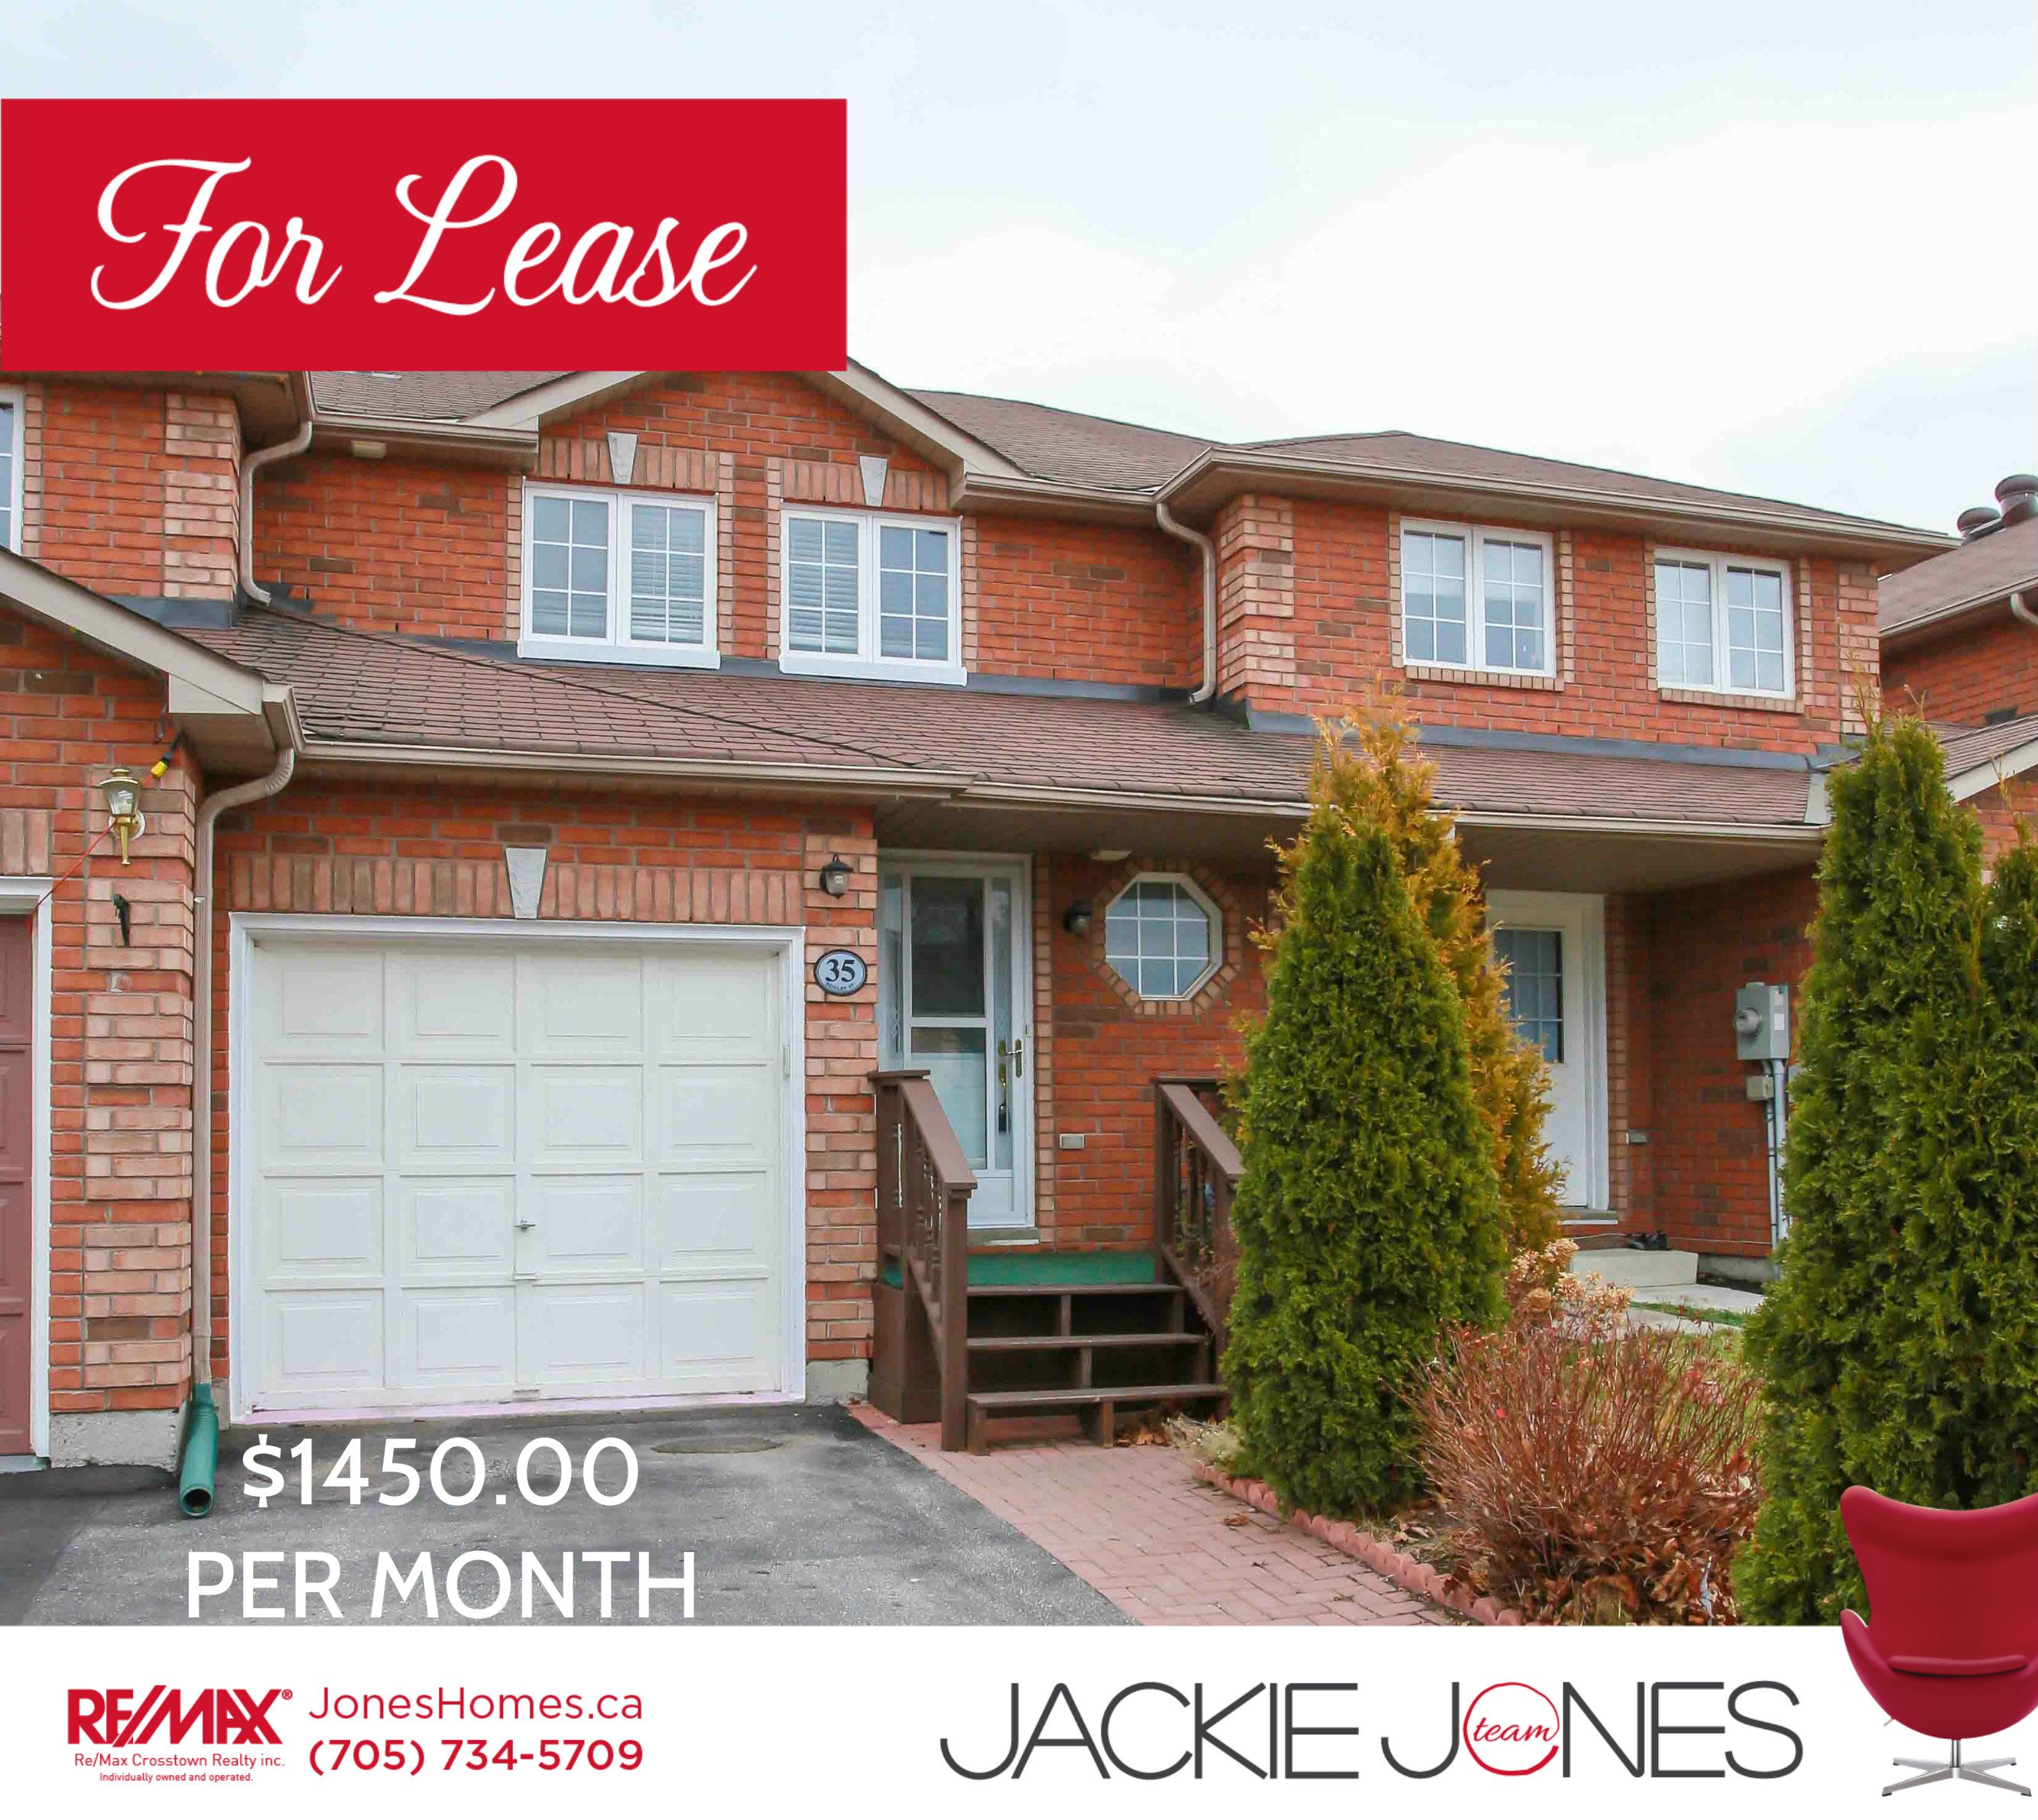 **FOR LEASE** FRESHLY PAINTED 3 BEDROOM TOWNHOME WITH